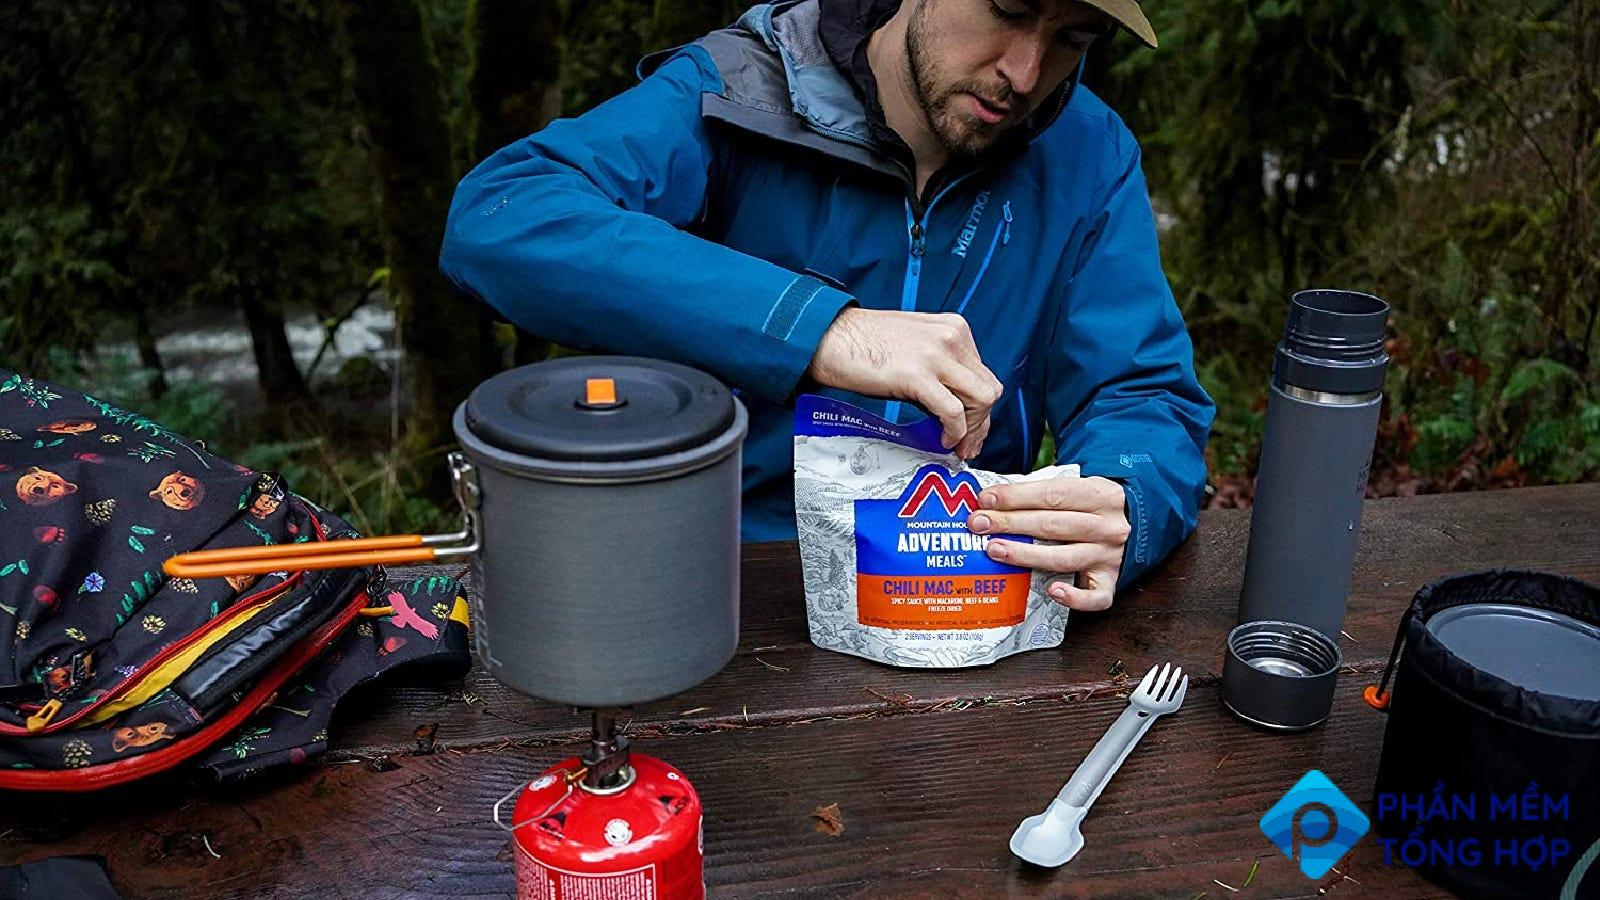 A camper opening up his Mountain House Meal before enjoying a hot dinner on a camping trip.